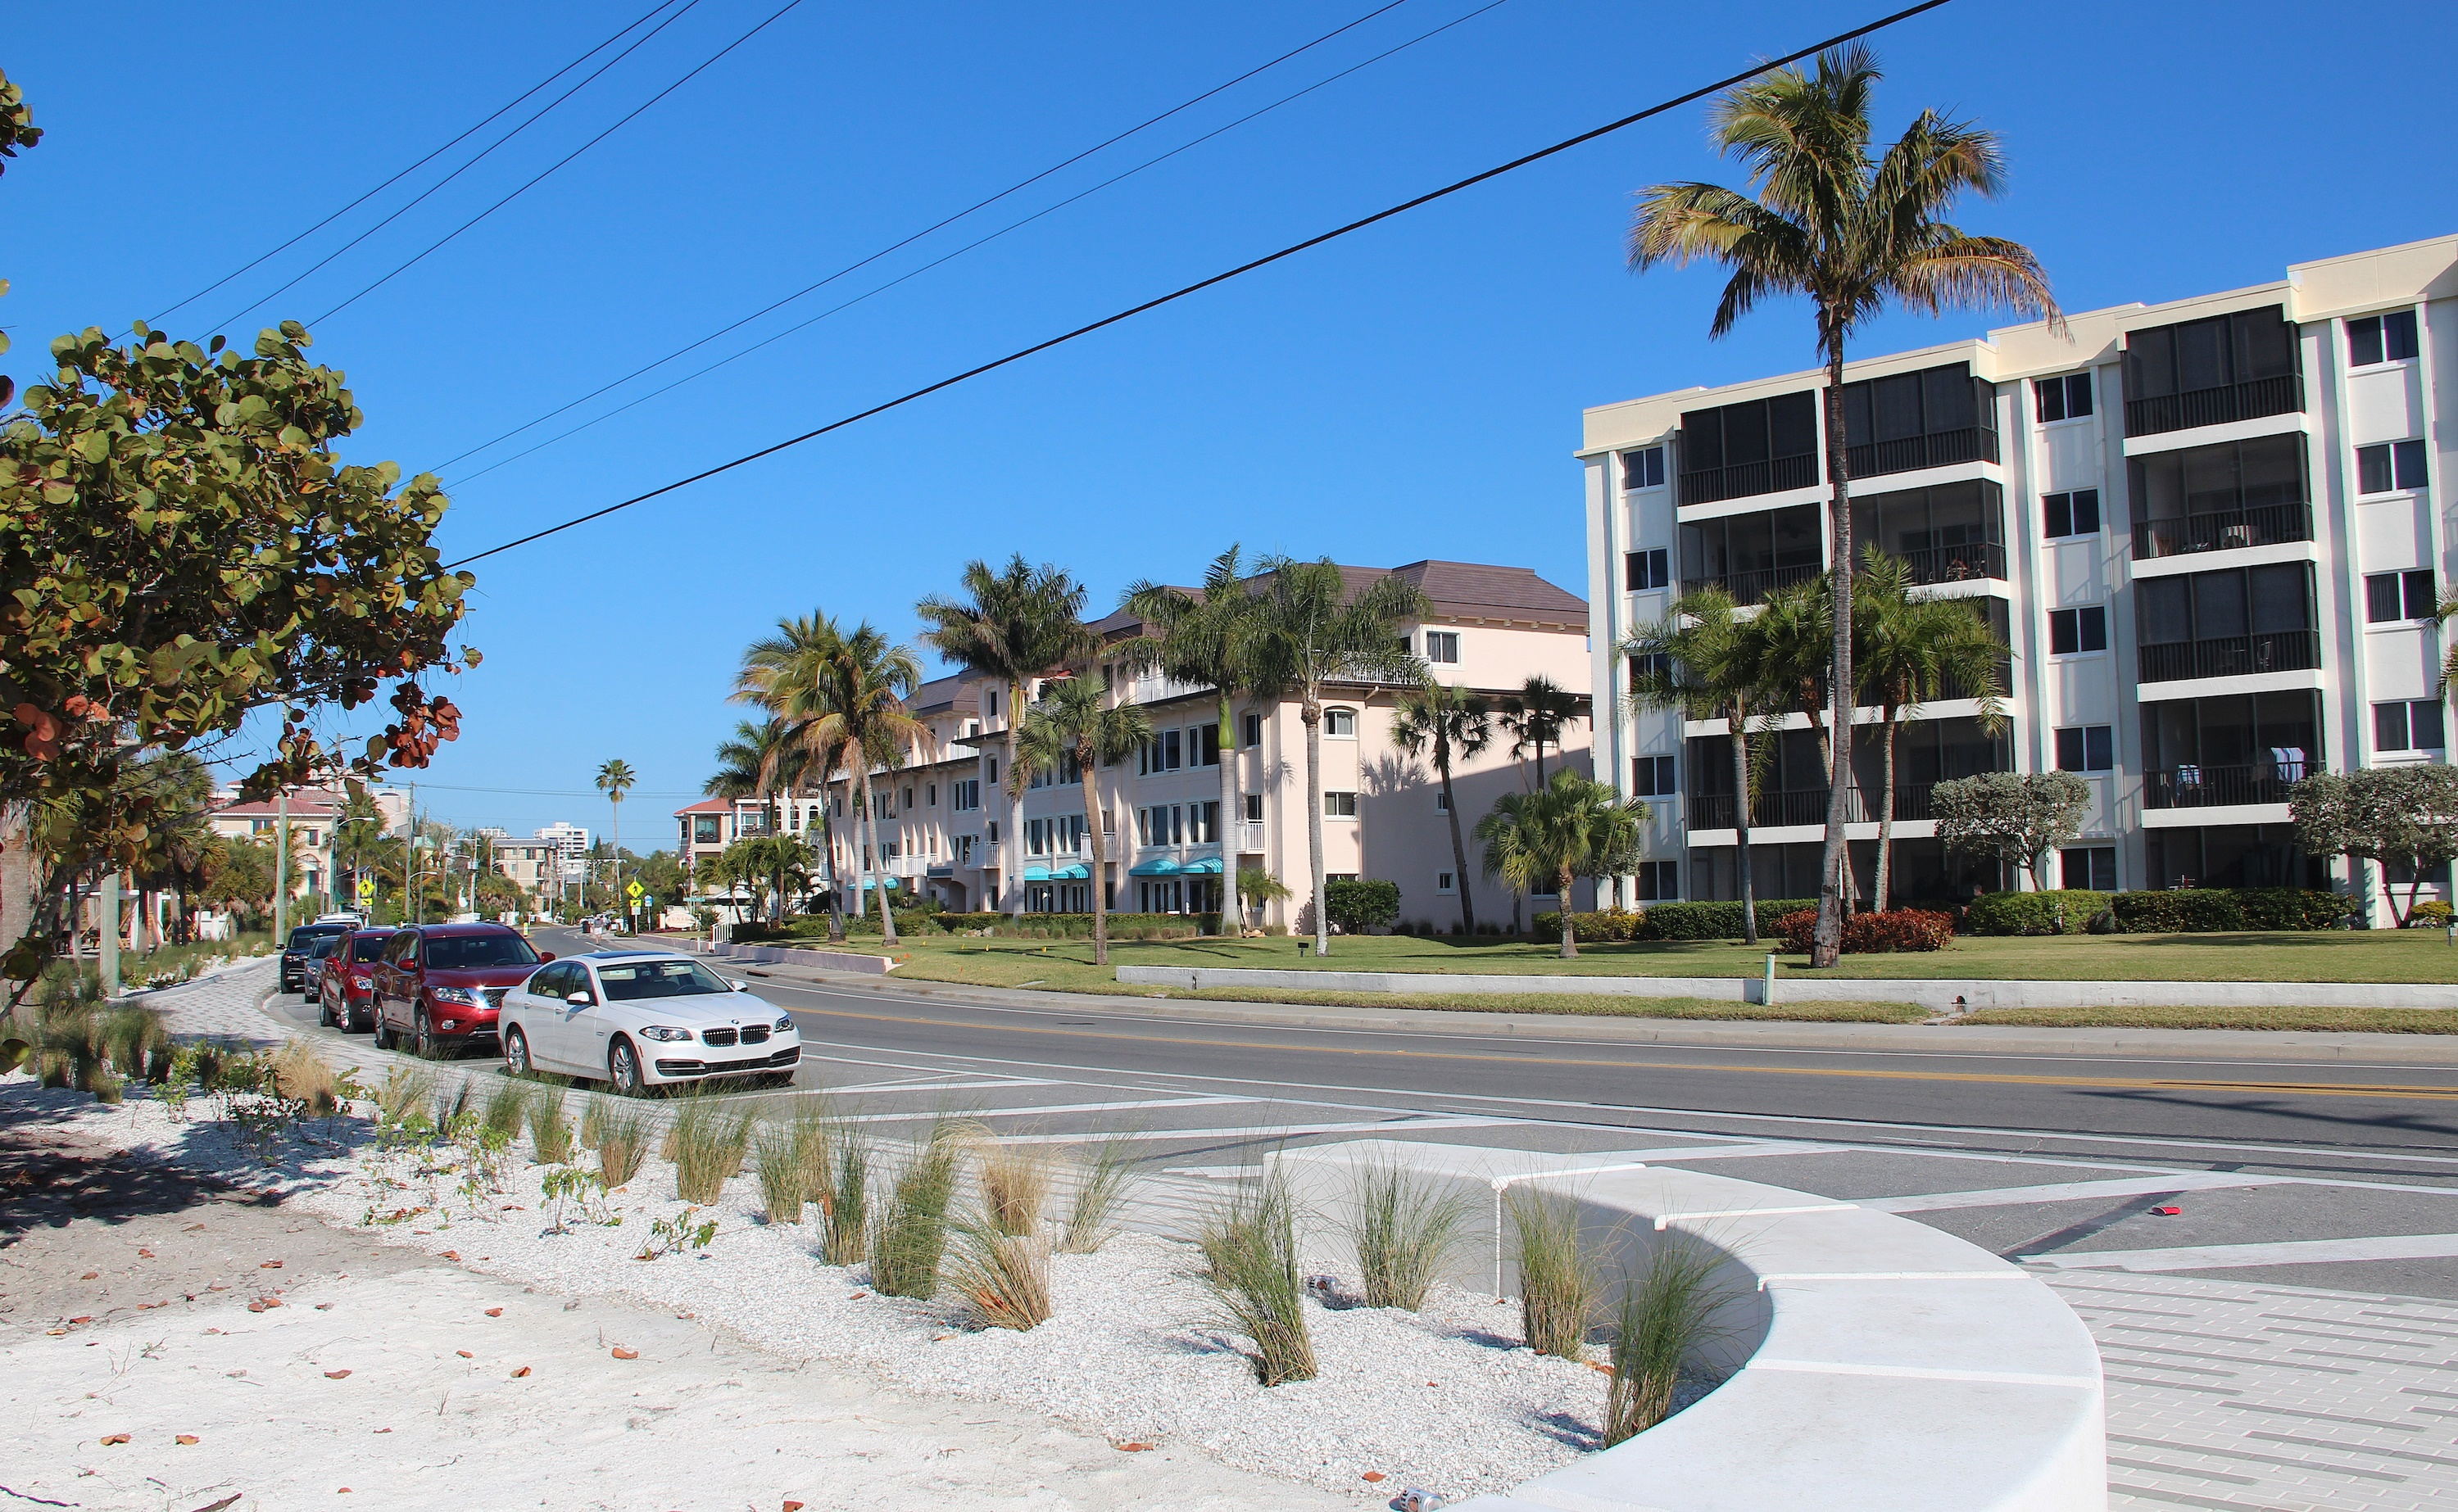 Traffic Advisory Council votes unanimously to deny restrictions on Beach Road parking spaces